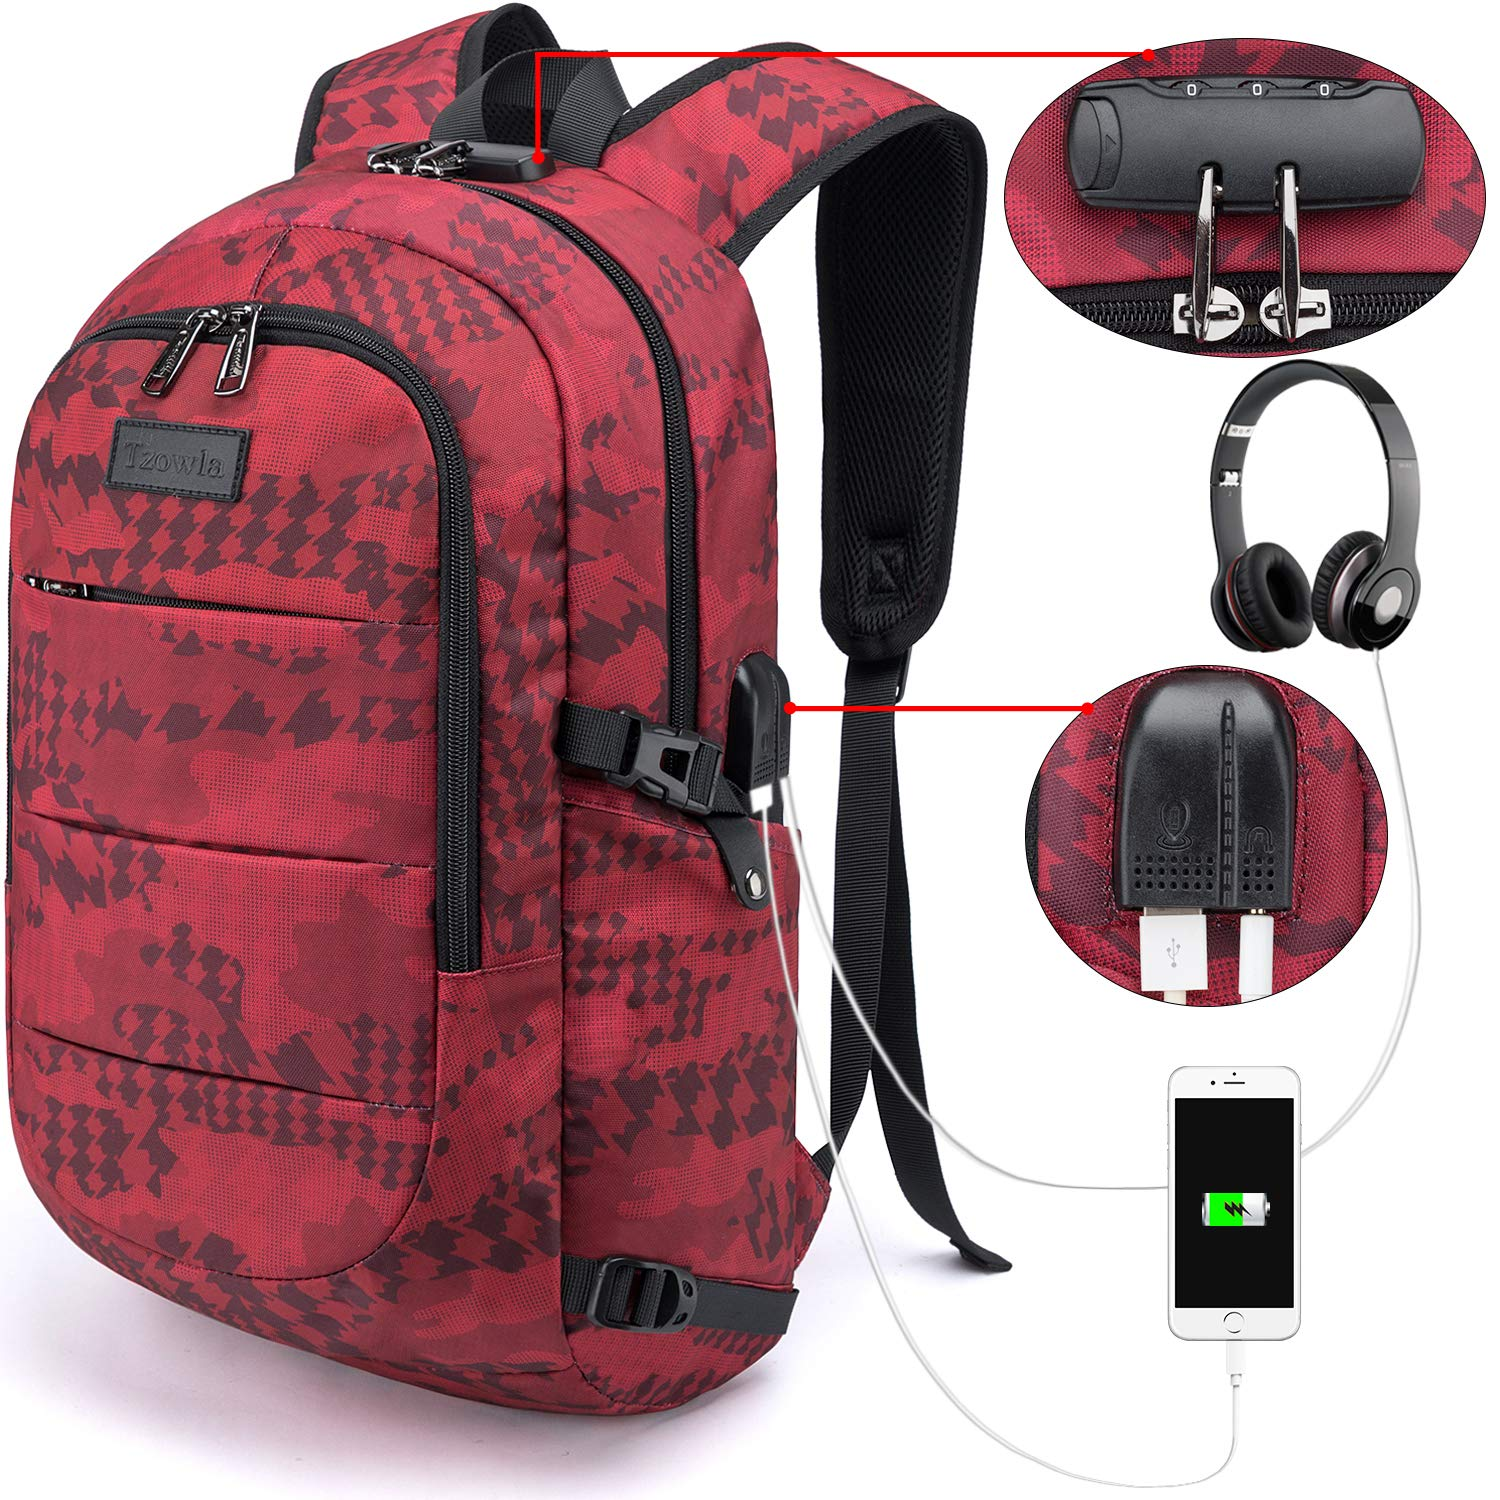 A-Black Casual Hiking Travel Daypack Tzowla Business Laptop Backpack Water Resistant Anti-Theft College Backpack with USB Charging Port and Lock 15.6 Inch Computer Backpacks for Women Men